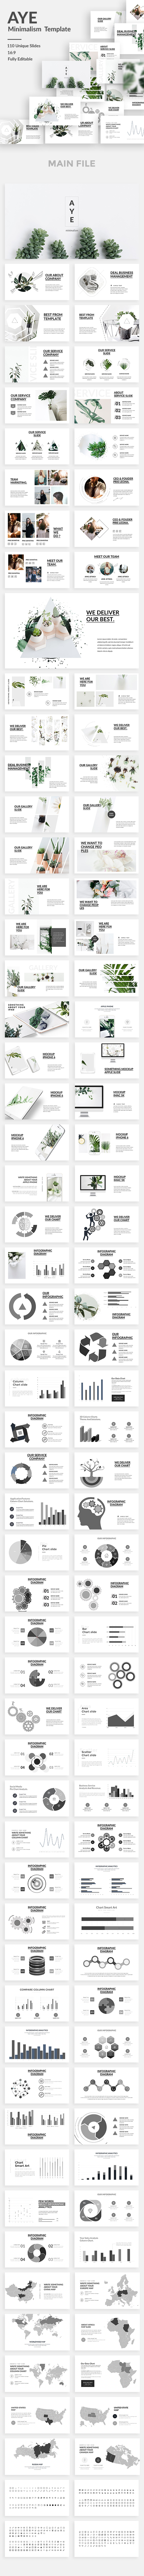 AYE Minimalism Powerpoint Template - Creative PowerPoint Templates